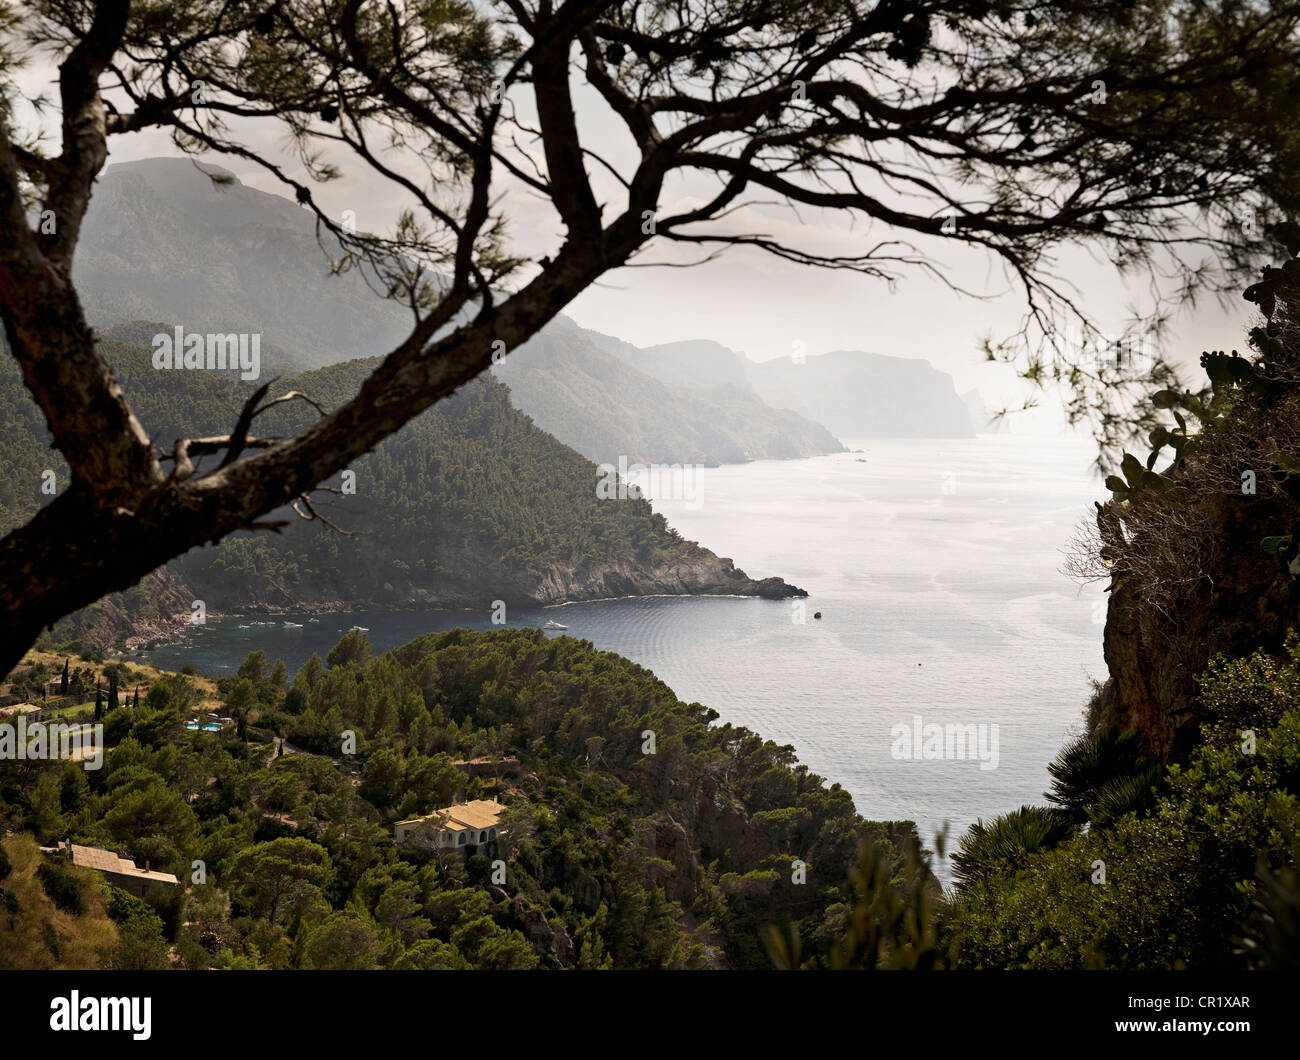 Trees on hilly rural coastline - Stock Image